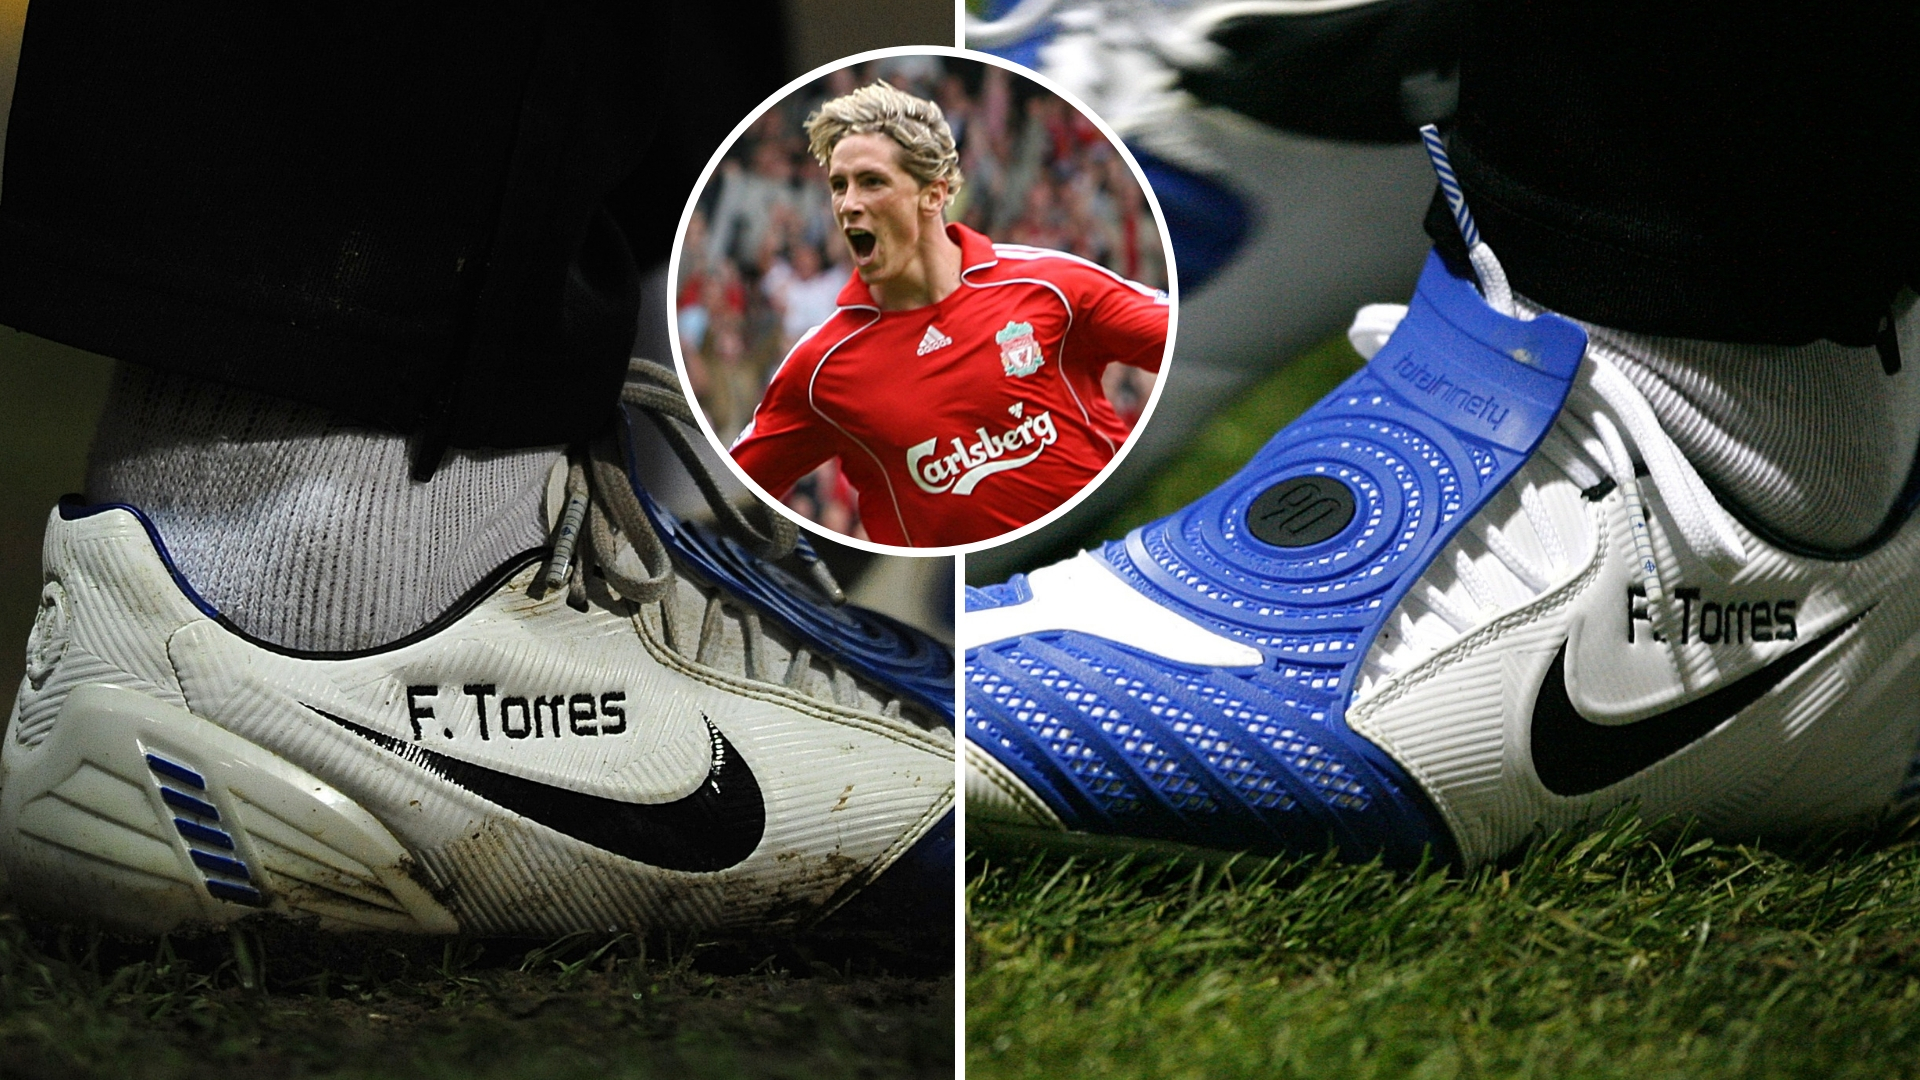 Liverpool legend Fernando Torres also knew the score when it came to stylish footwear. Credit: PA